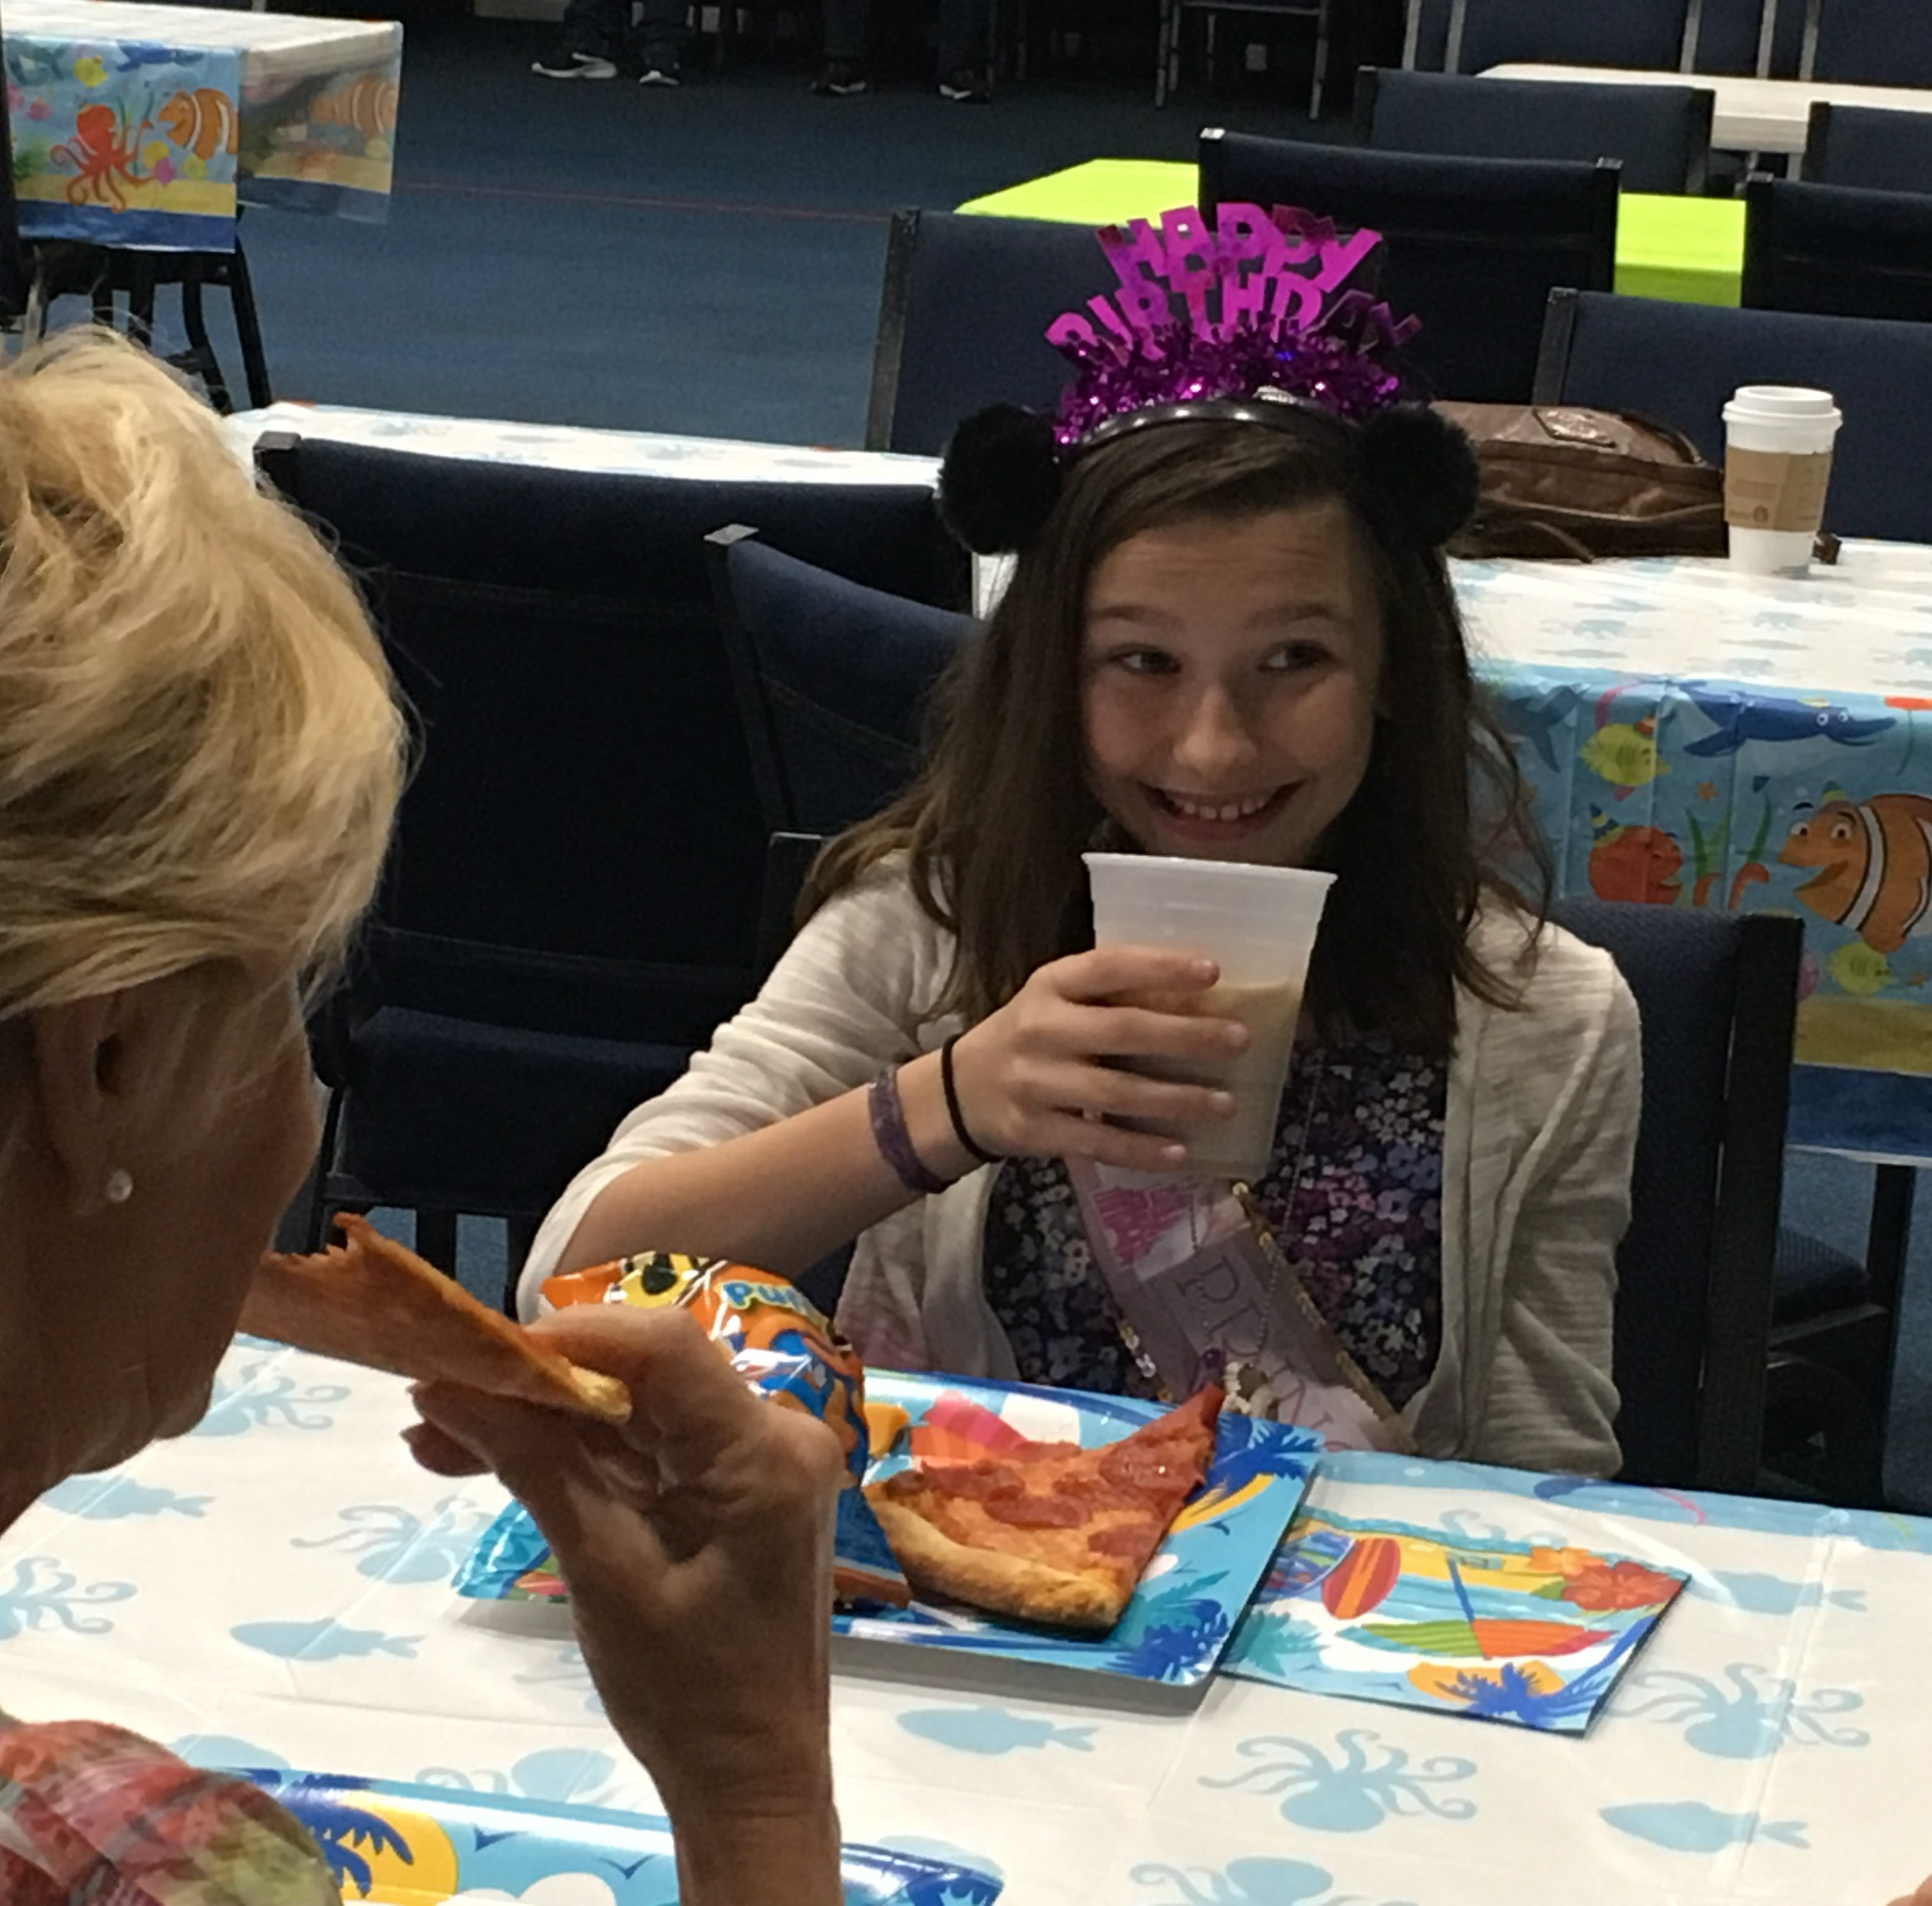 Daughter of late soldier gets surprise party of 10th birthday in Indian River County